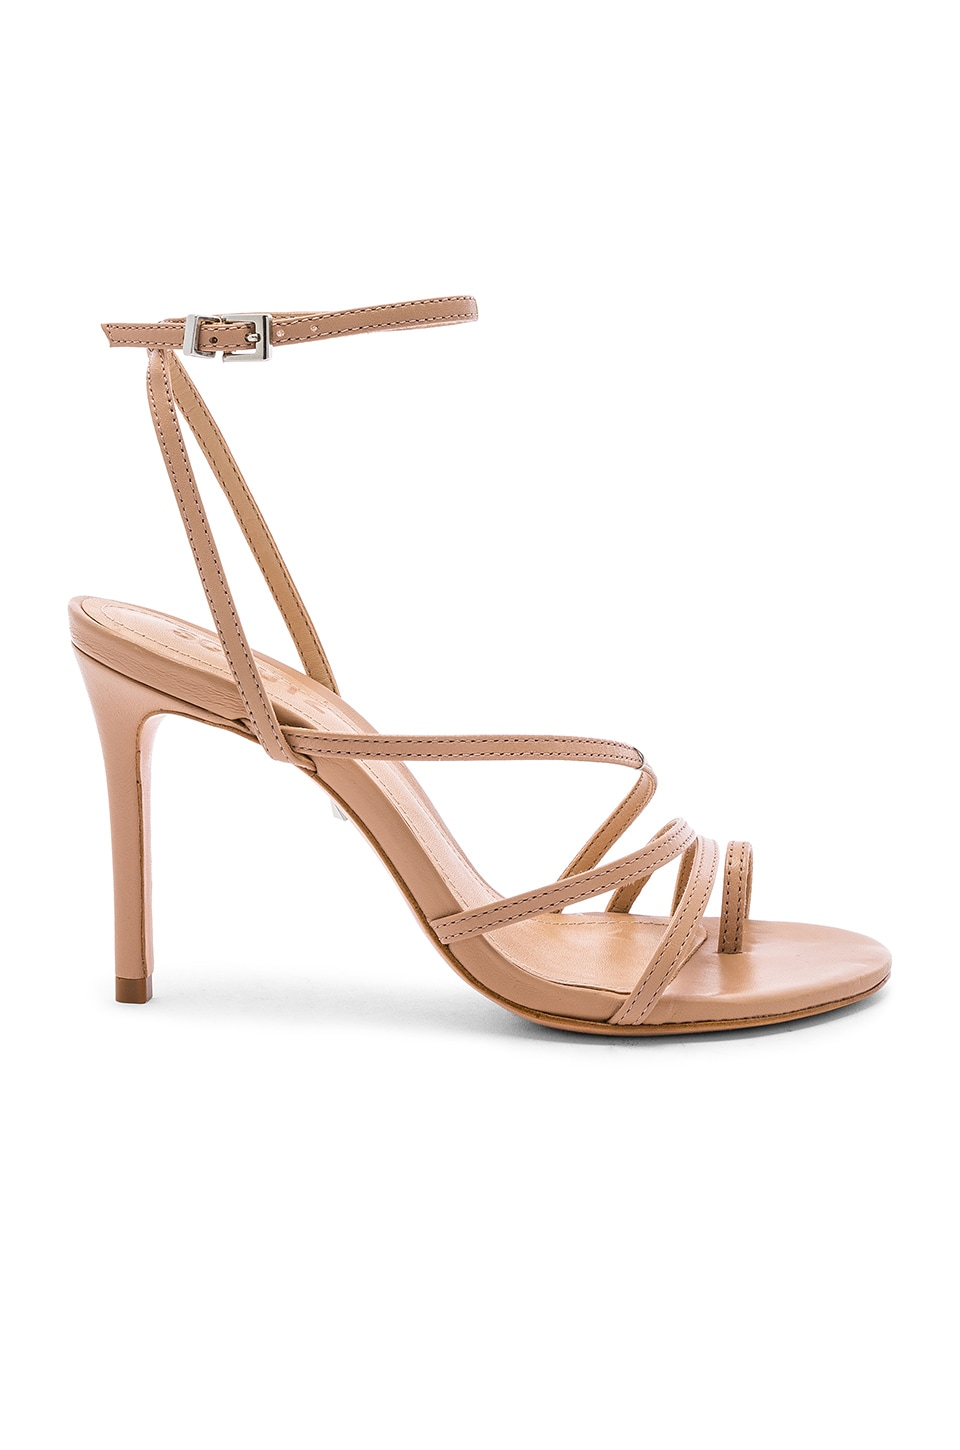 Schutz Raona Heel in Honey Beige